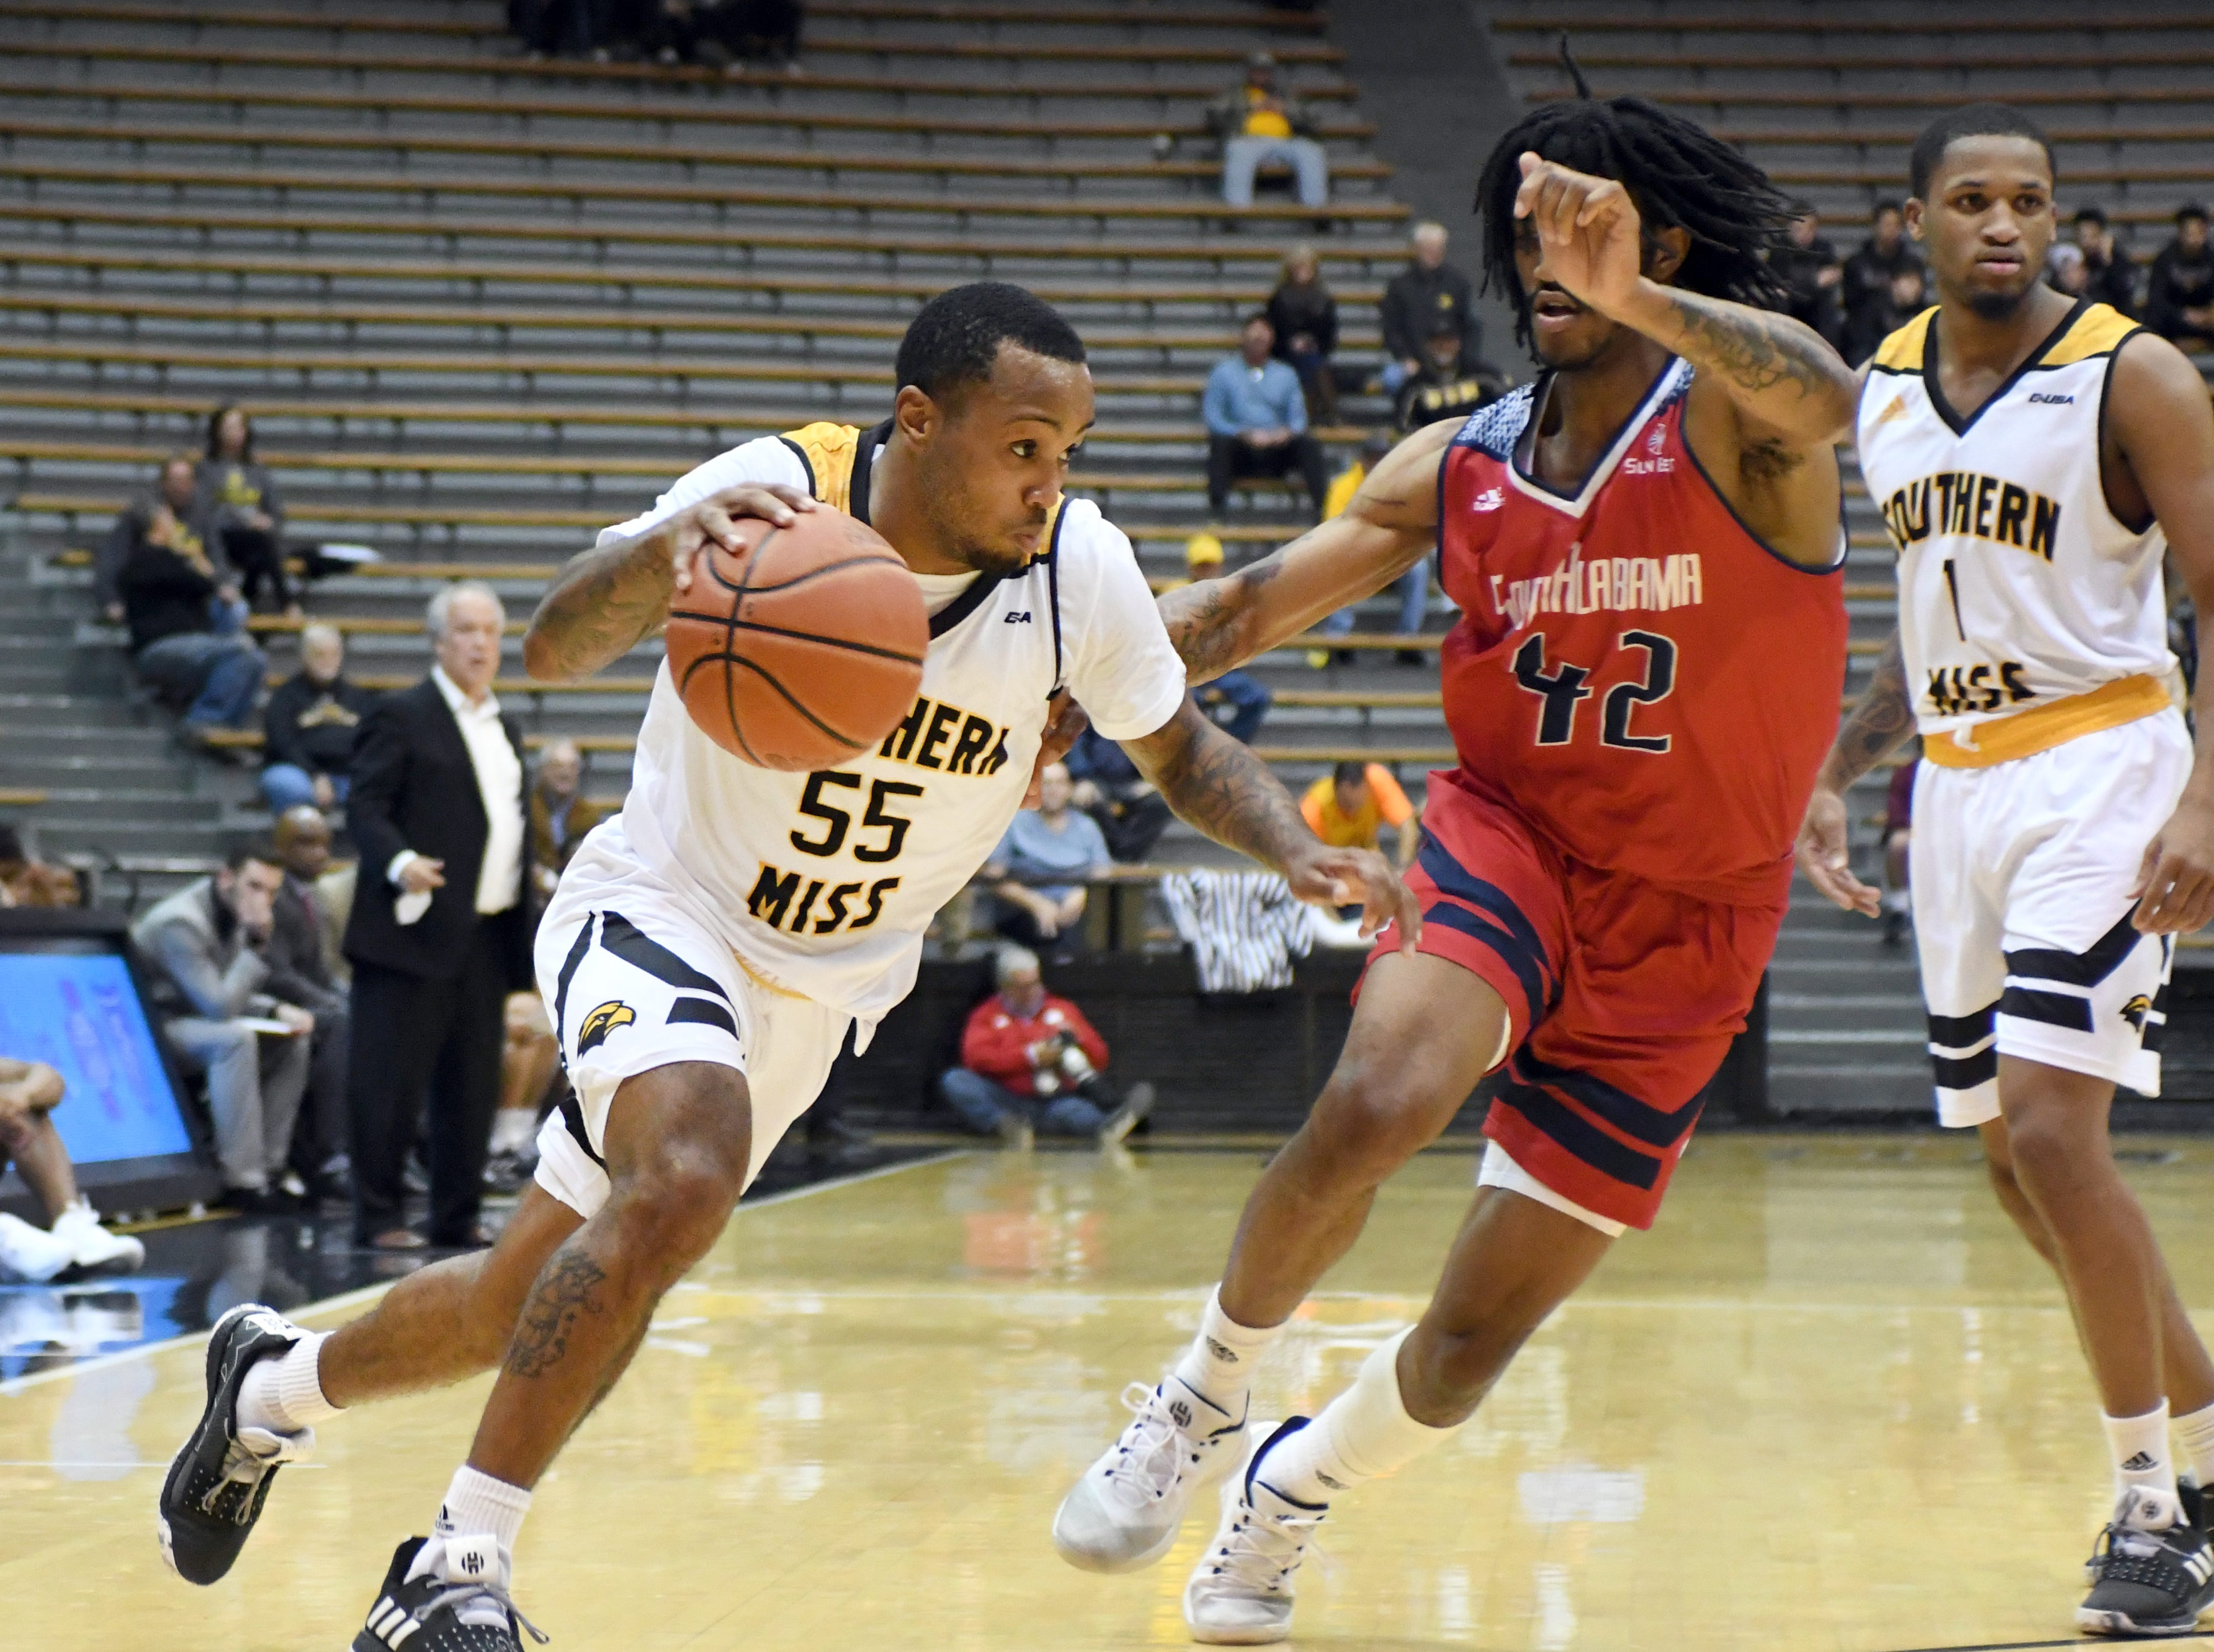 Southern Miss guard Tyree Griffin passes a defender in a game against South Alabama in Reed Green Coliseum on Wednesday, November 28, 2018.